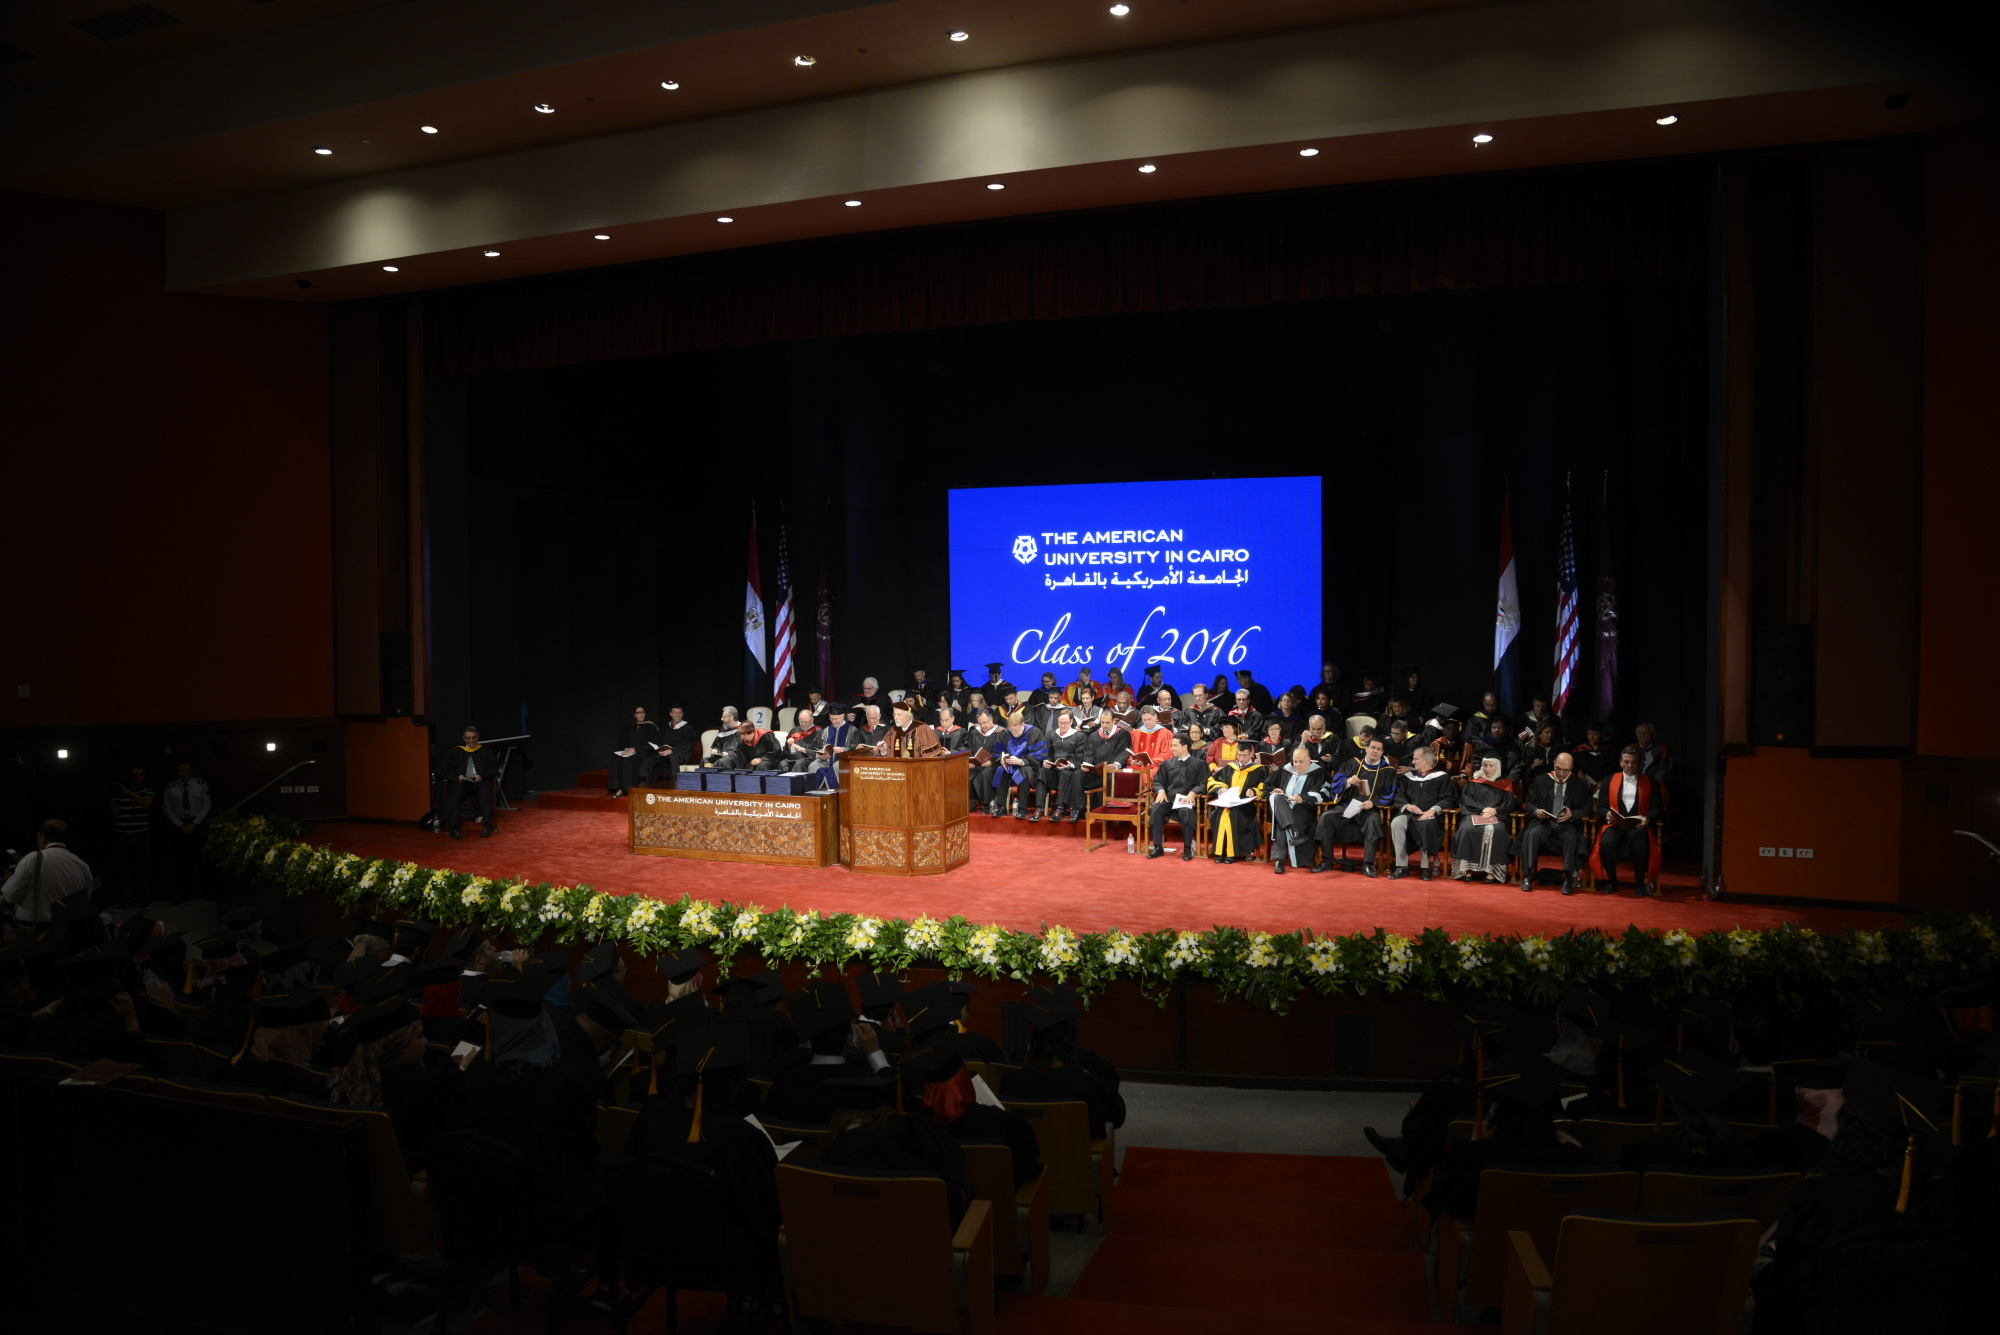 Dr. Bassily famously named the University's main auditorium on the New Cairo campus, Bassily Auditorium, which accommodates more than 1,000 people and is used for major AUC events such as commencement